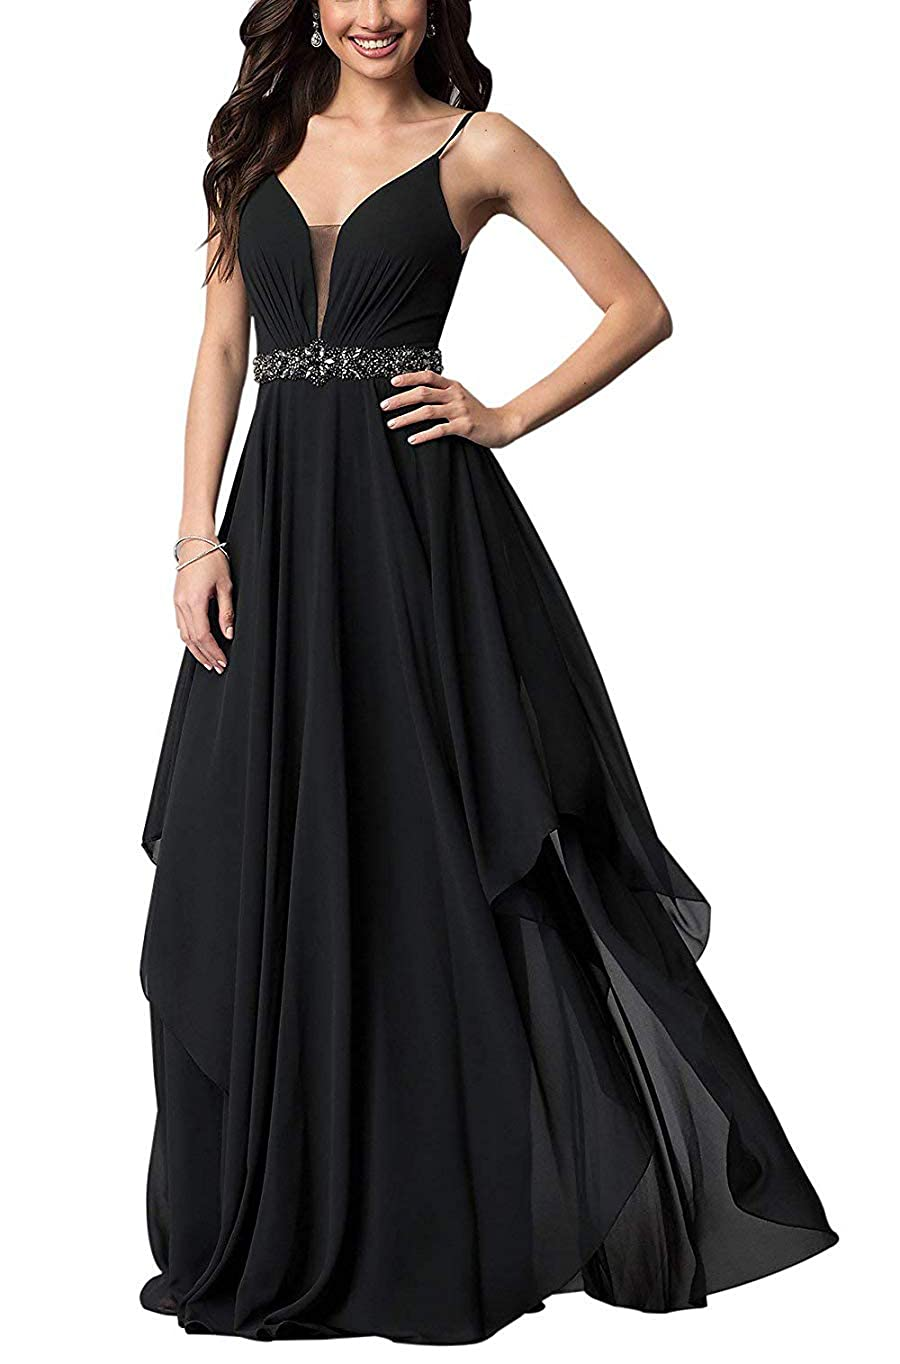 Black Stylefun Spaghetii Strap Bridesmaid Dress for Women Ruched Skirt Evening Formal Gowns with Beaded Belt KN025